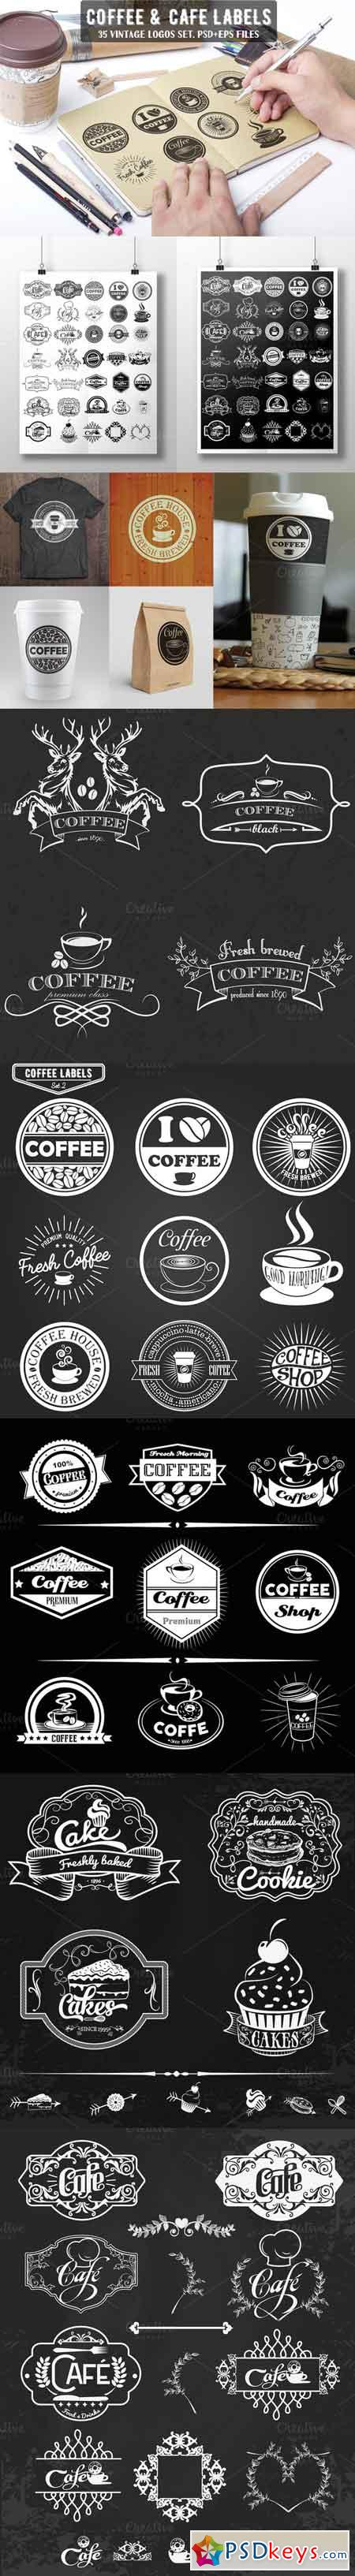 35 Coffee, Cafe & Cake Logo Bundle 394804